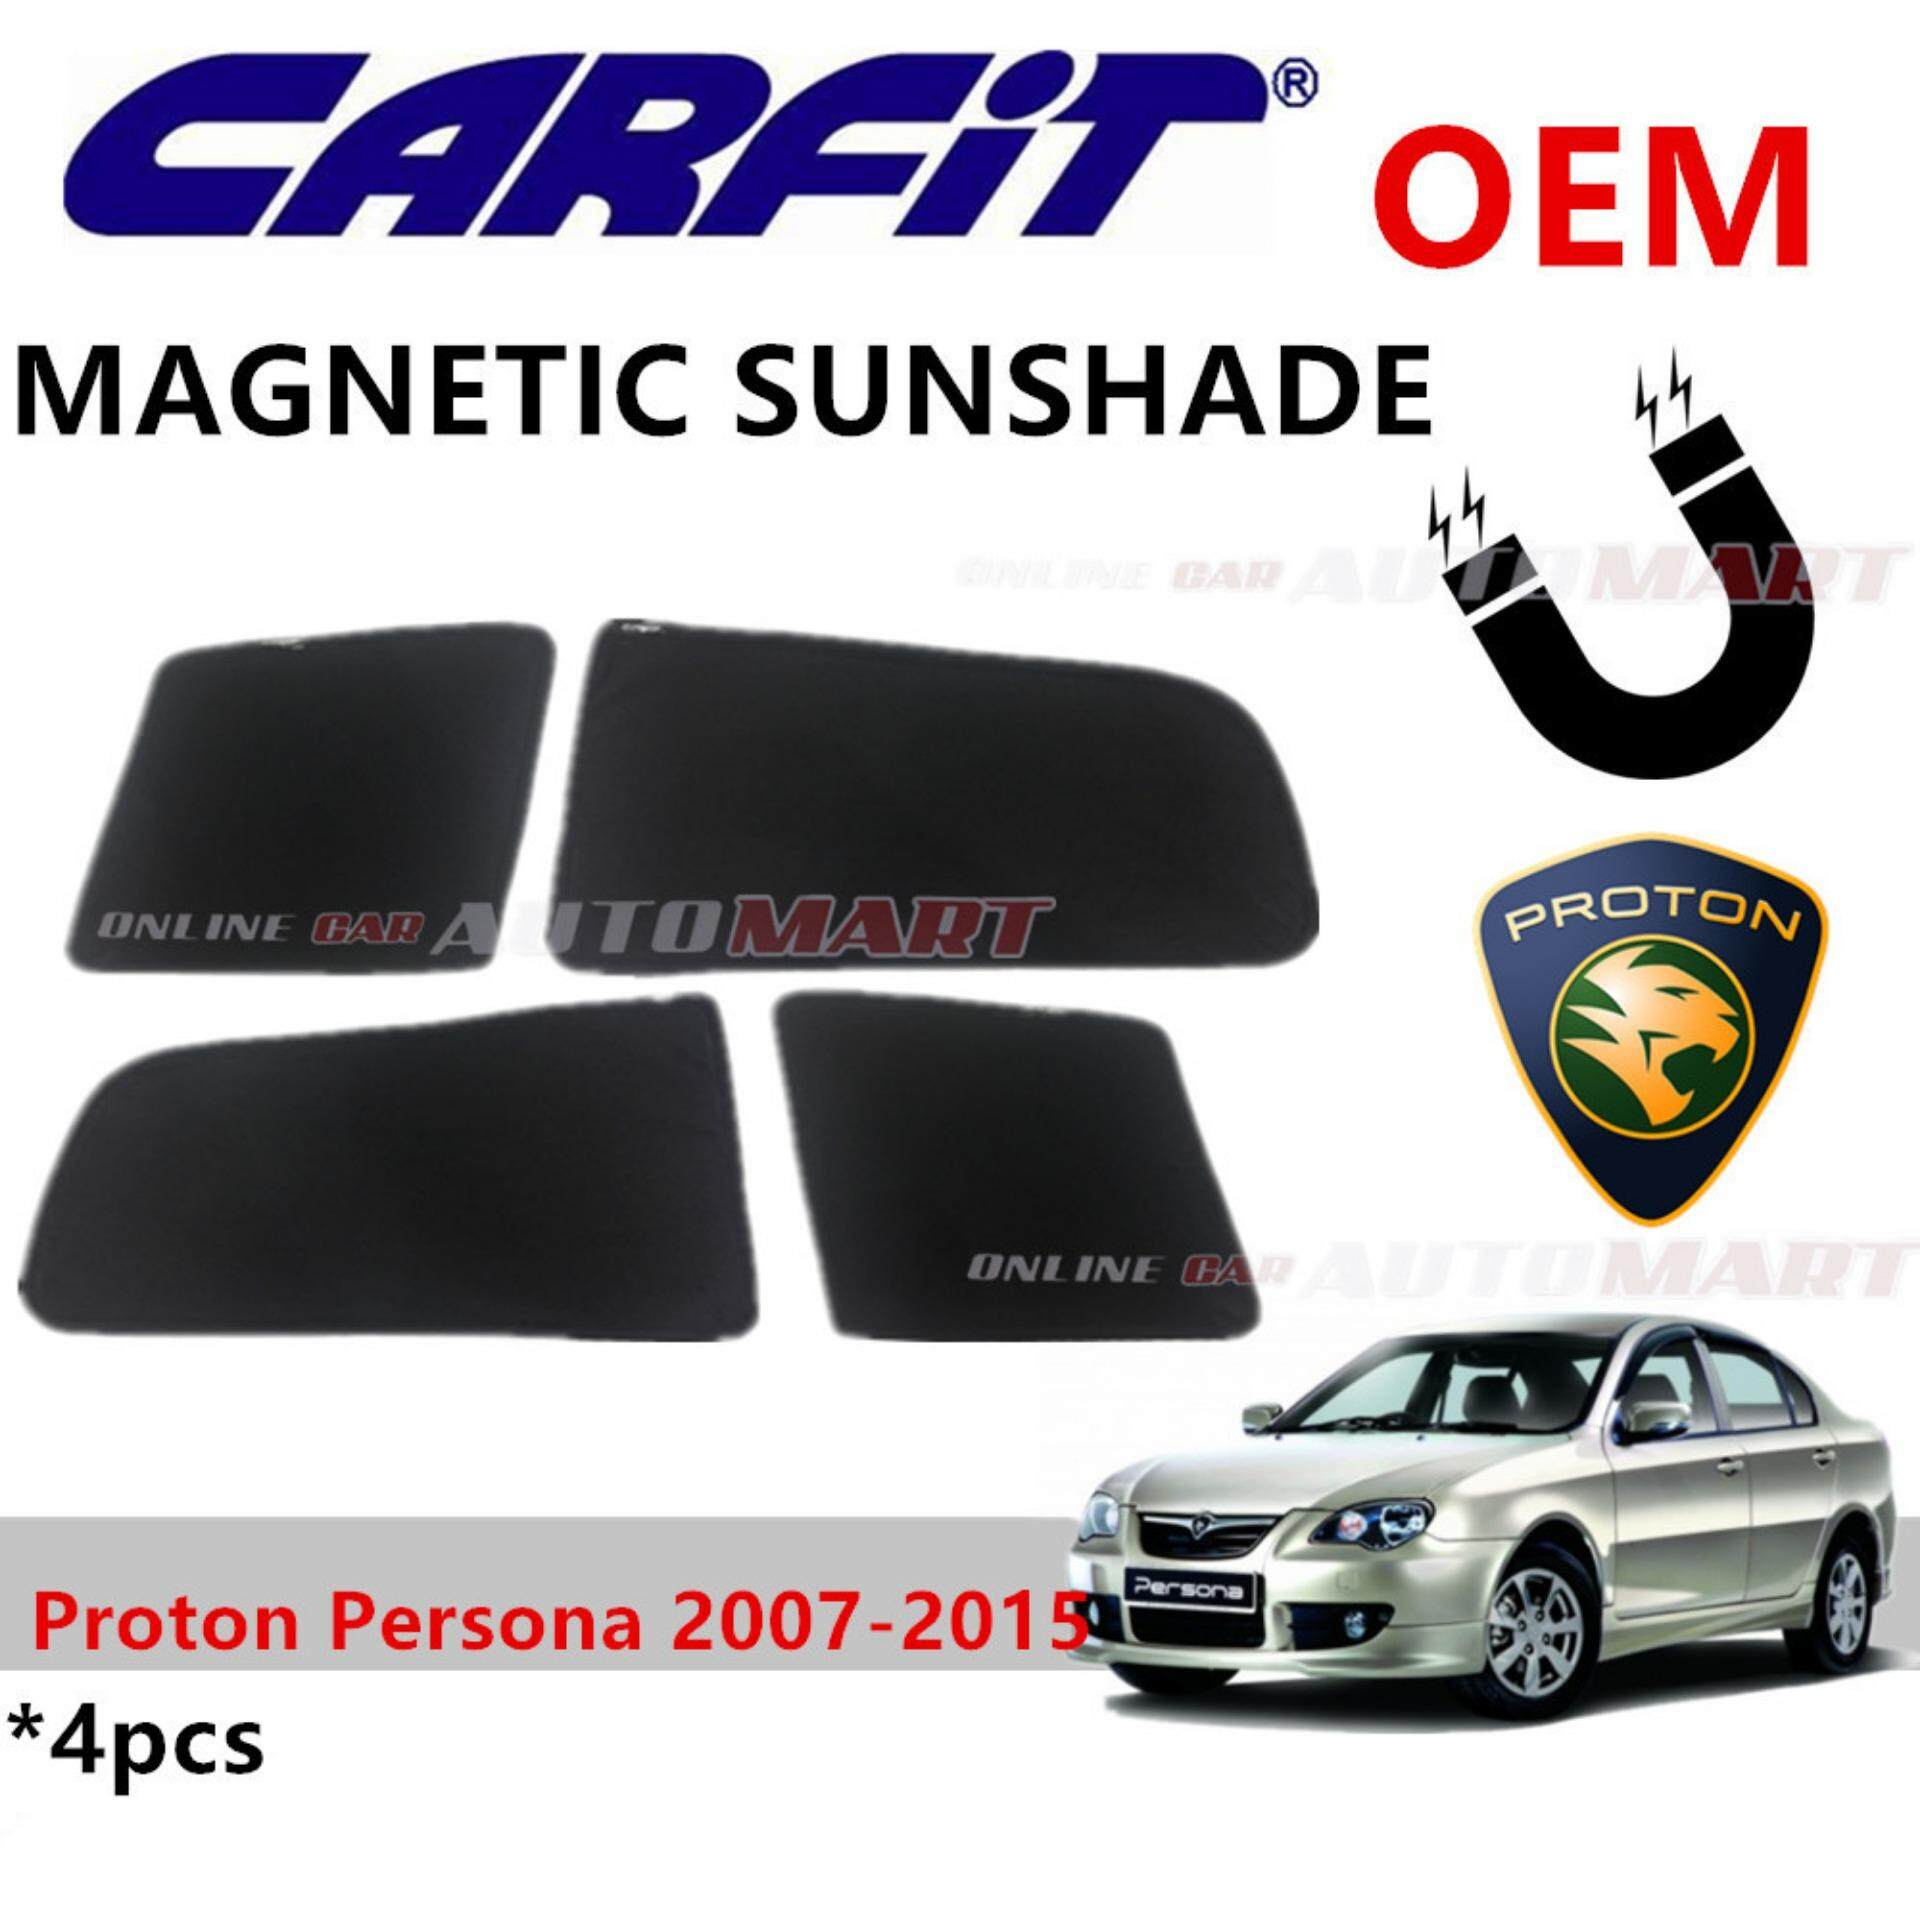 CARFIT OEM Magnetic Custom Fit Sunshade For Proton Persona Yr 2007-2015 (4pcs Sets)